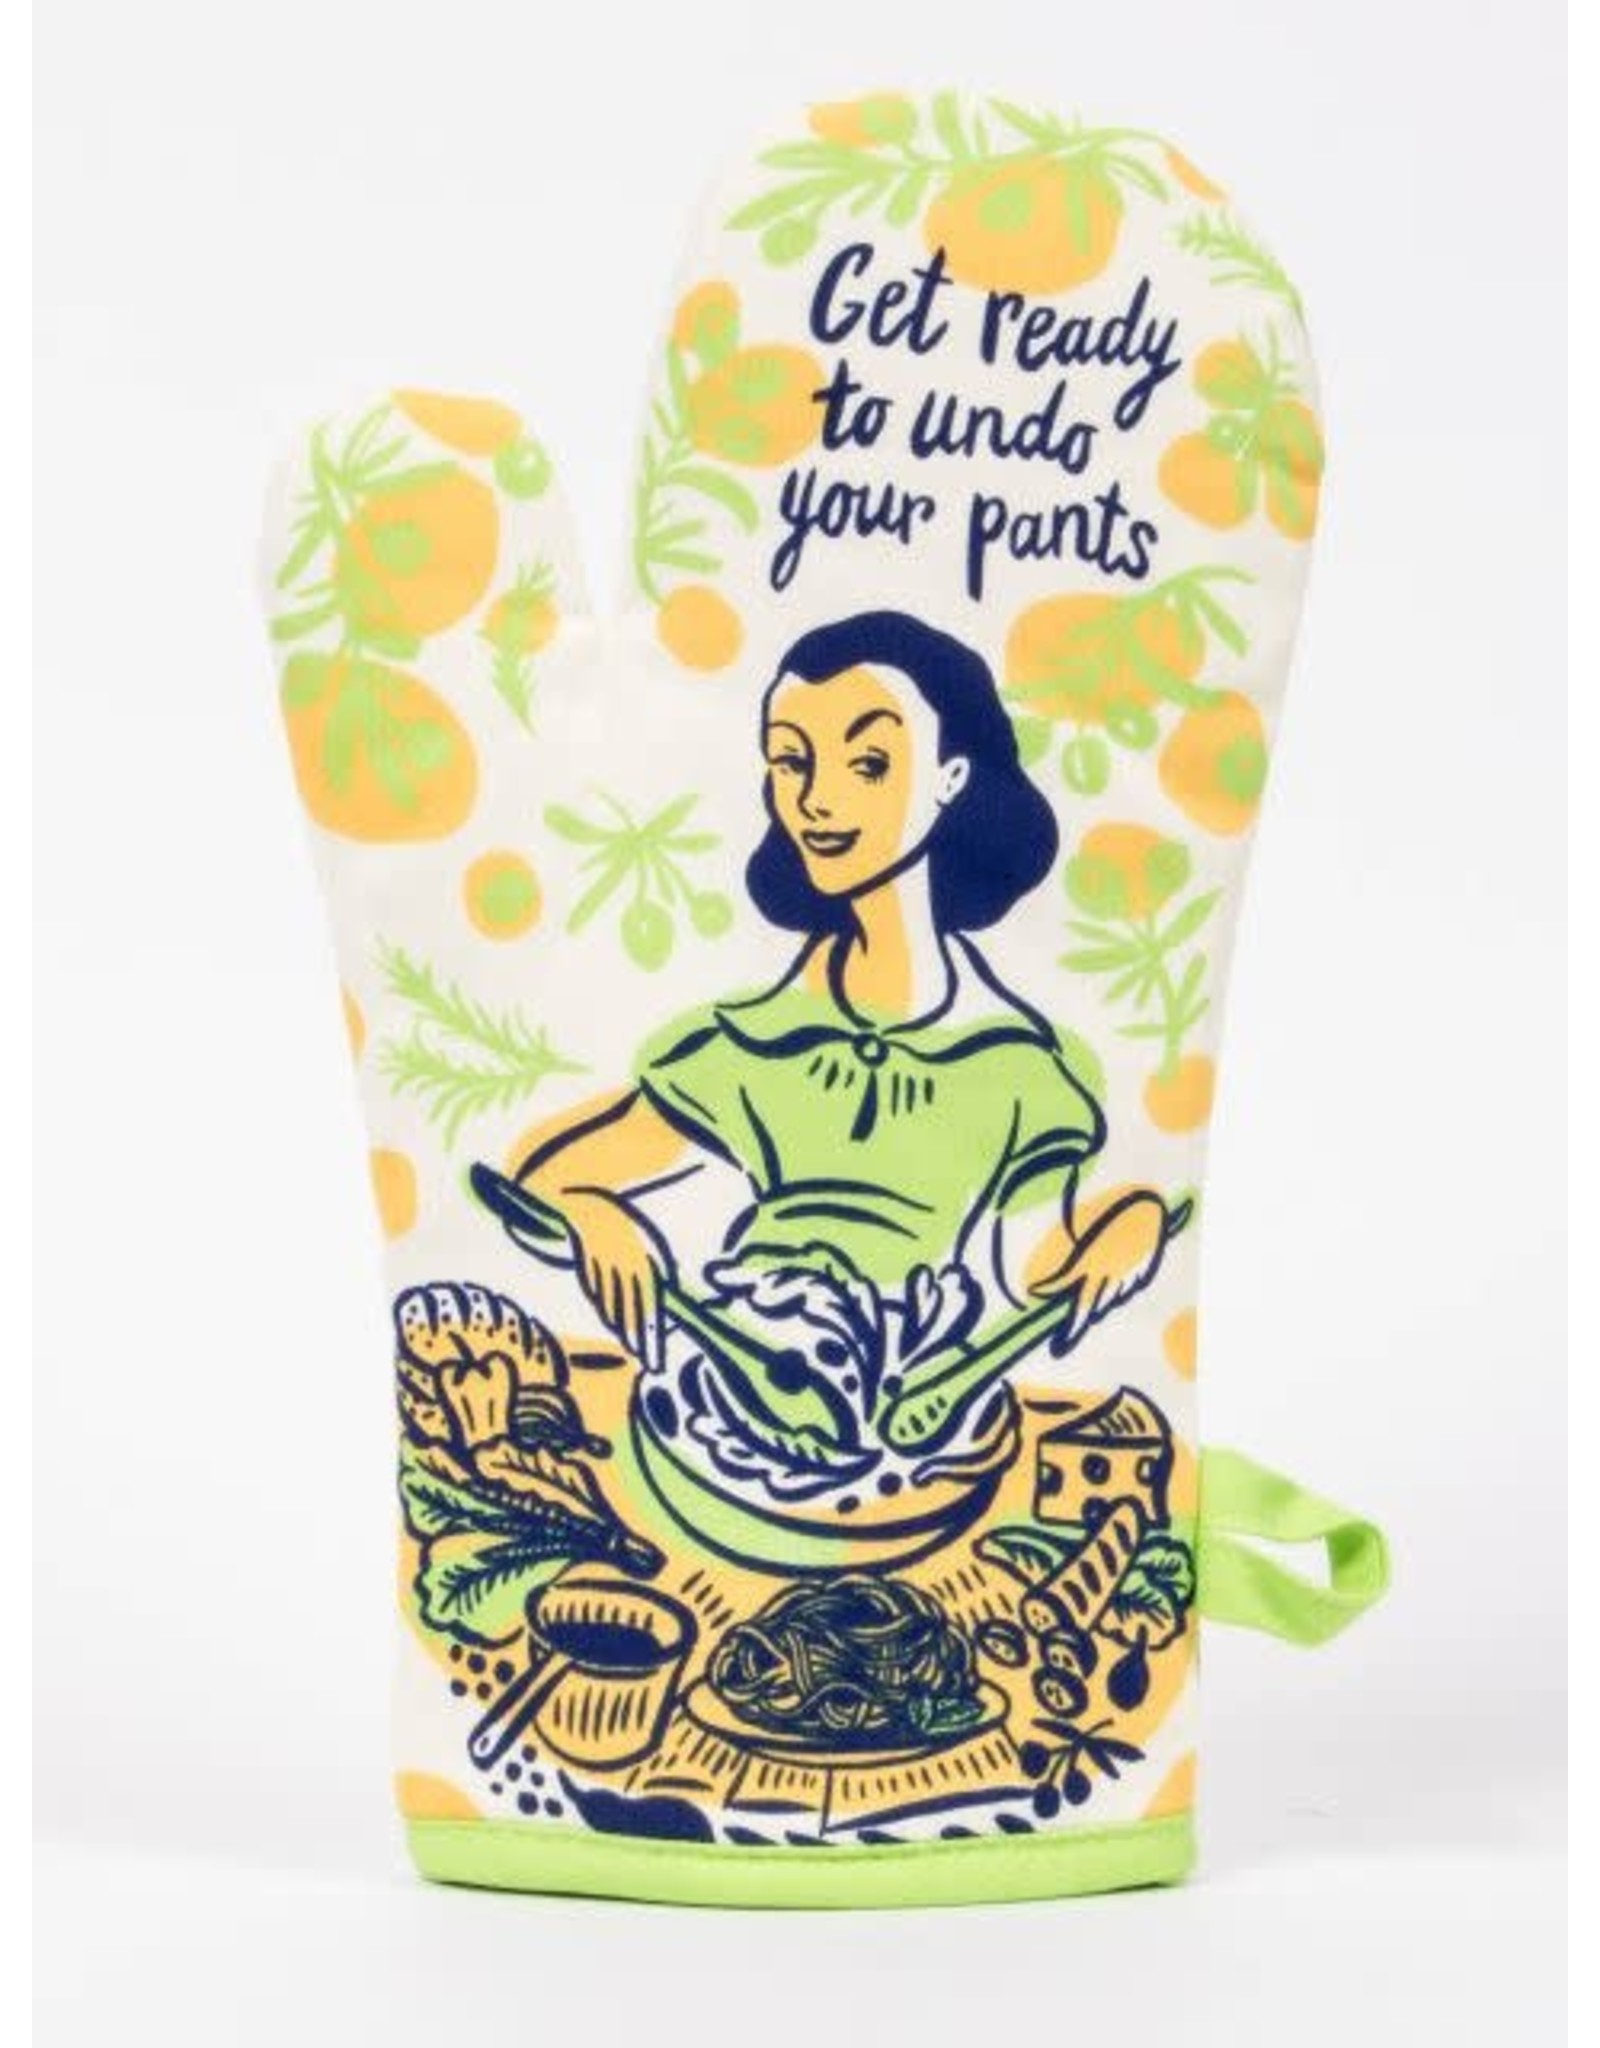 Blue Q Oven Mitt, Get Ready to Undo Your Pants